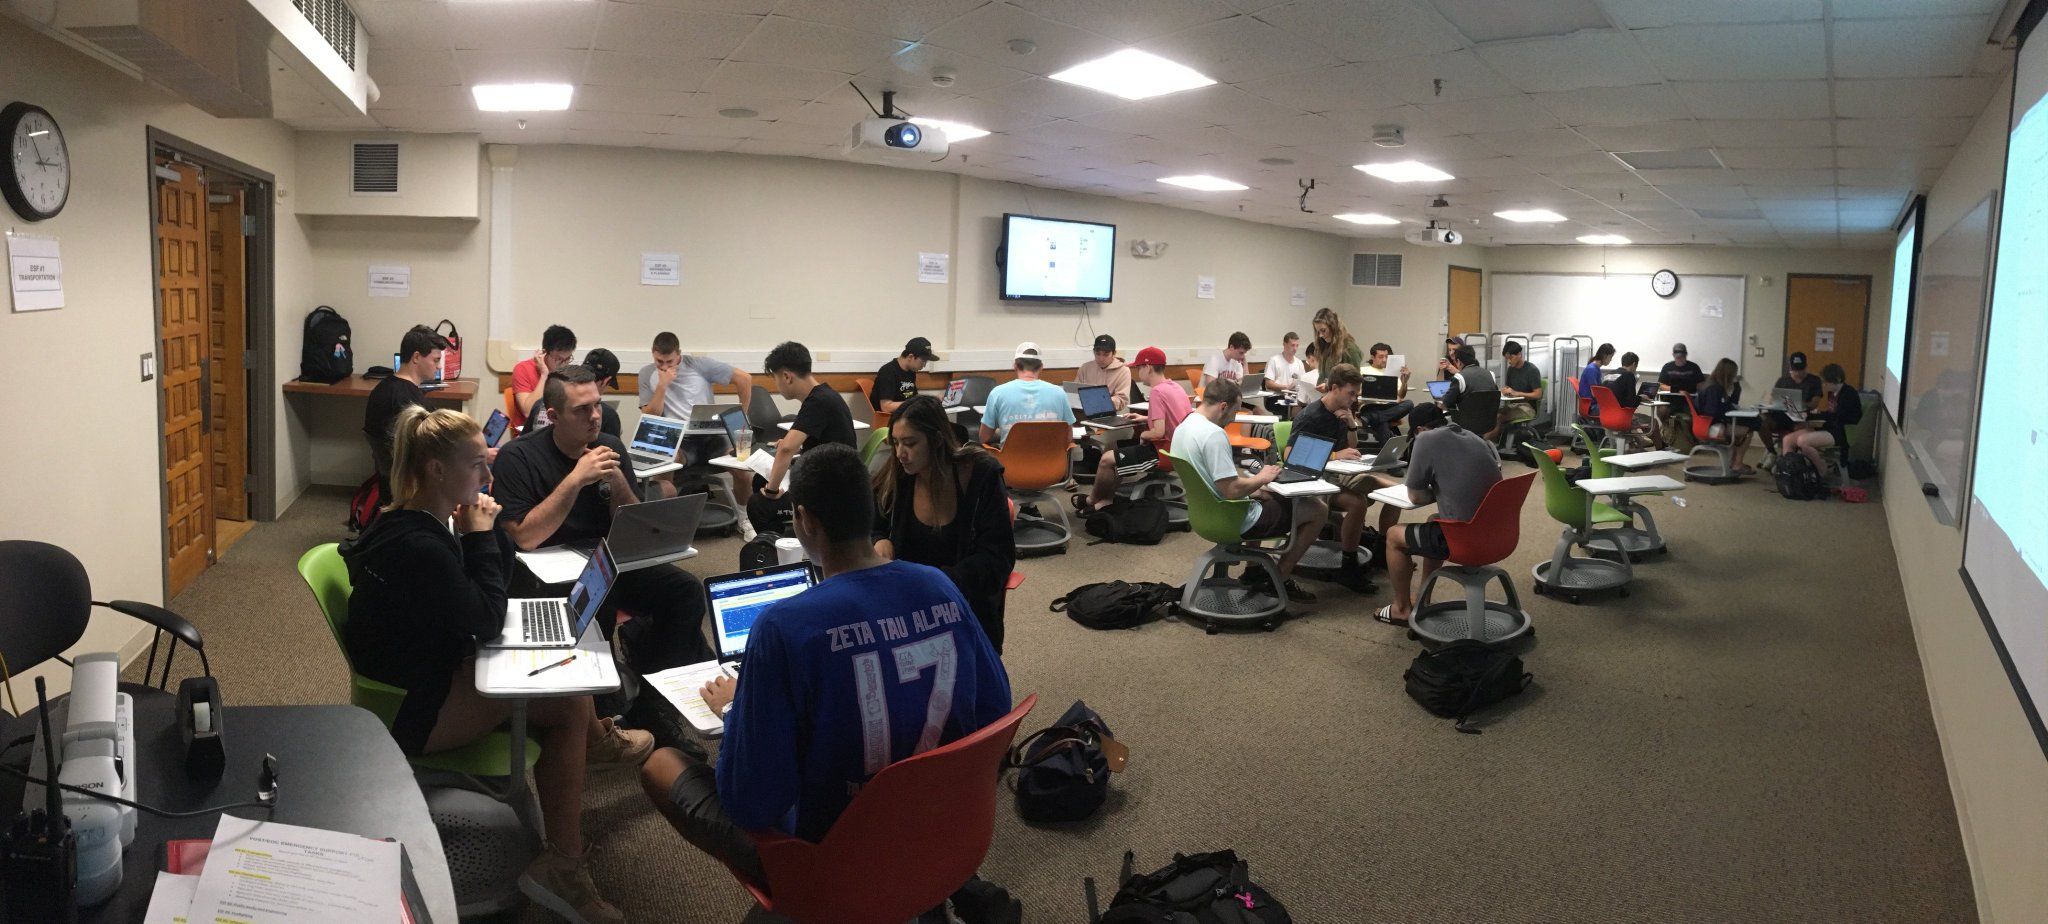 Here are students in the Fall 2018 Informatics in Disasters and Emergency Response class manning a Remote Emergency Operations Center for Hurricane Florence. They produced a rich 22 page situation report covering everything from critical infrastructure to pet shelters.